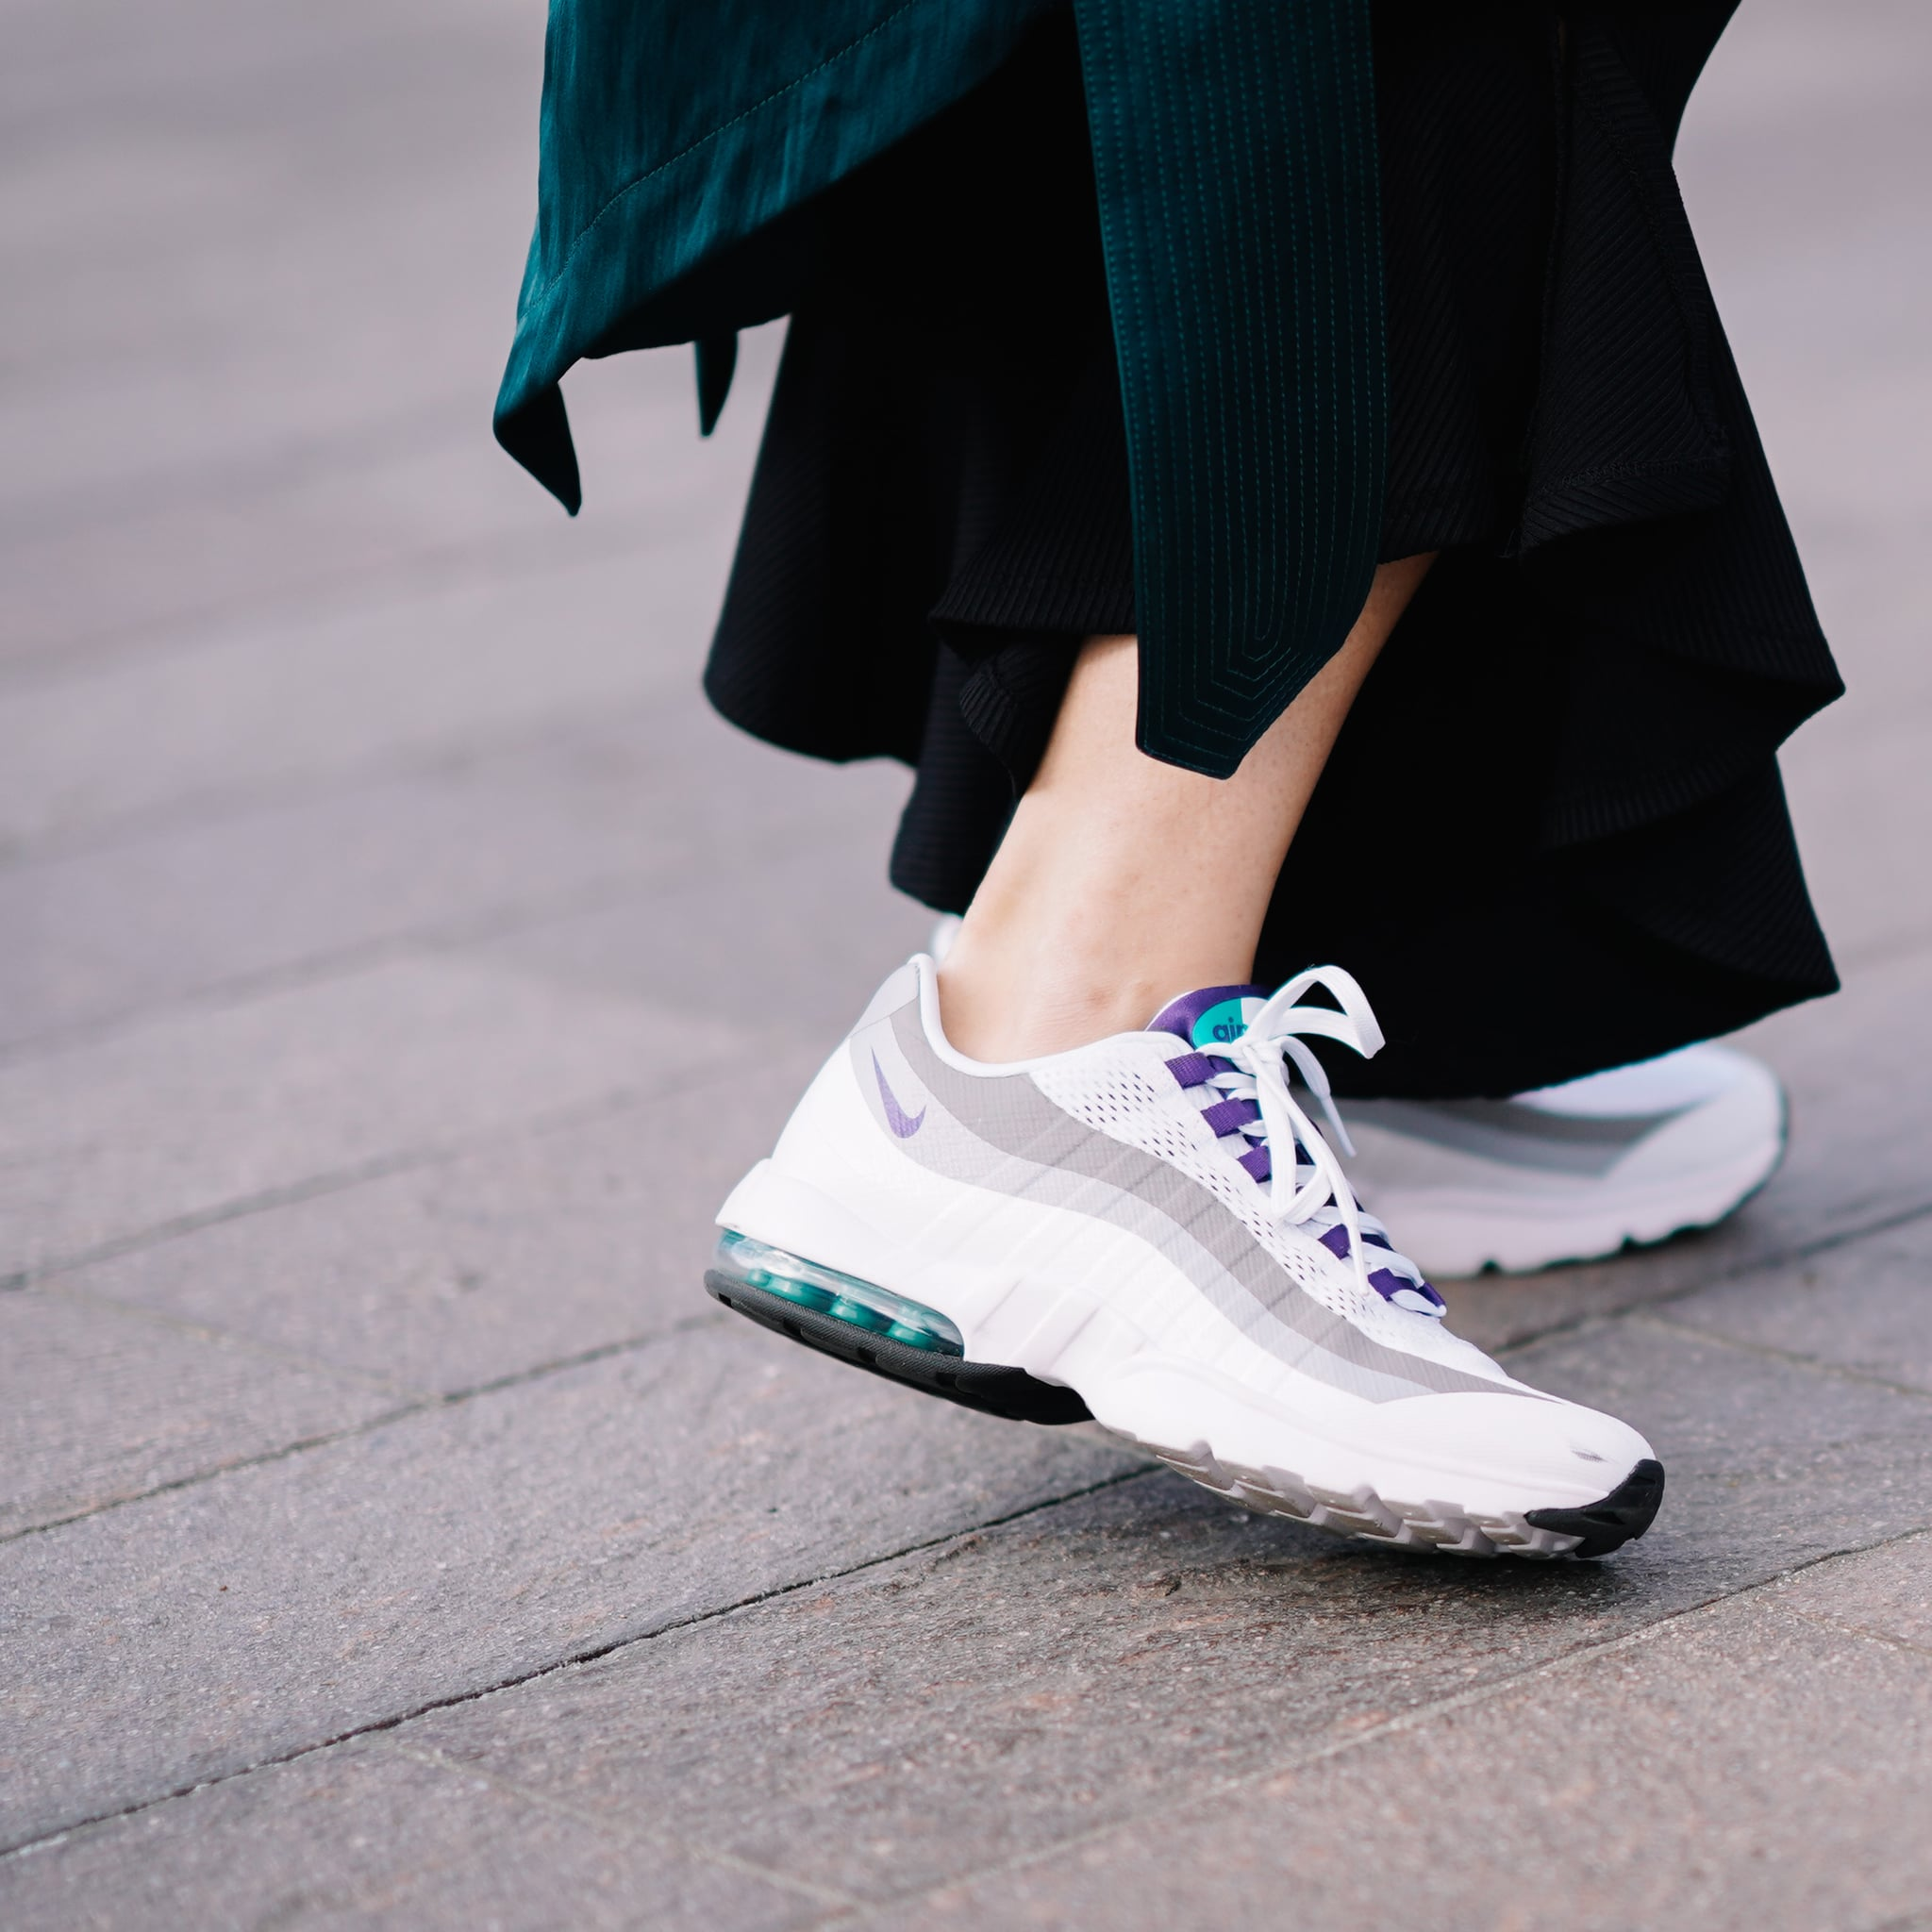 Best Nike Sneakers For Women on Sale at